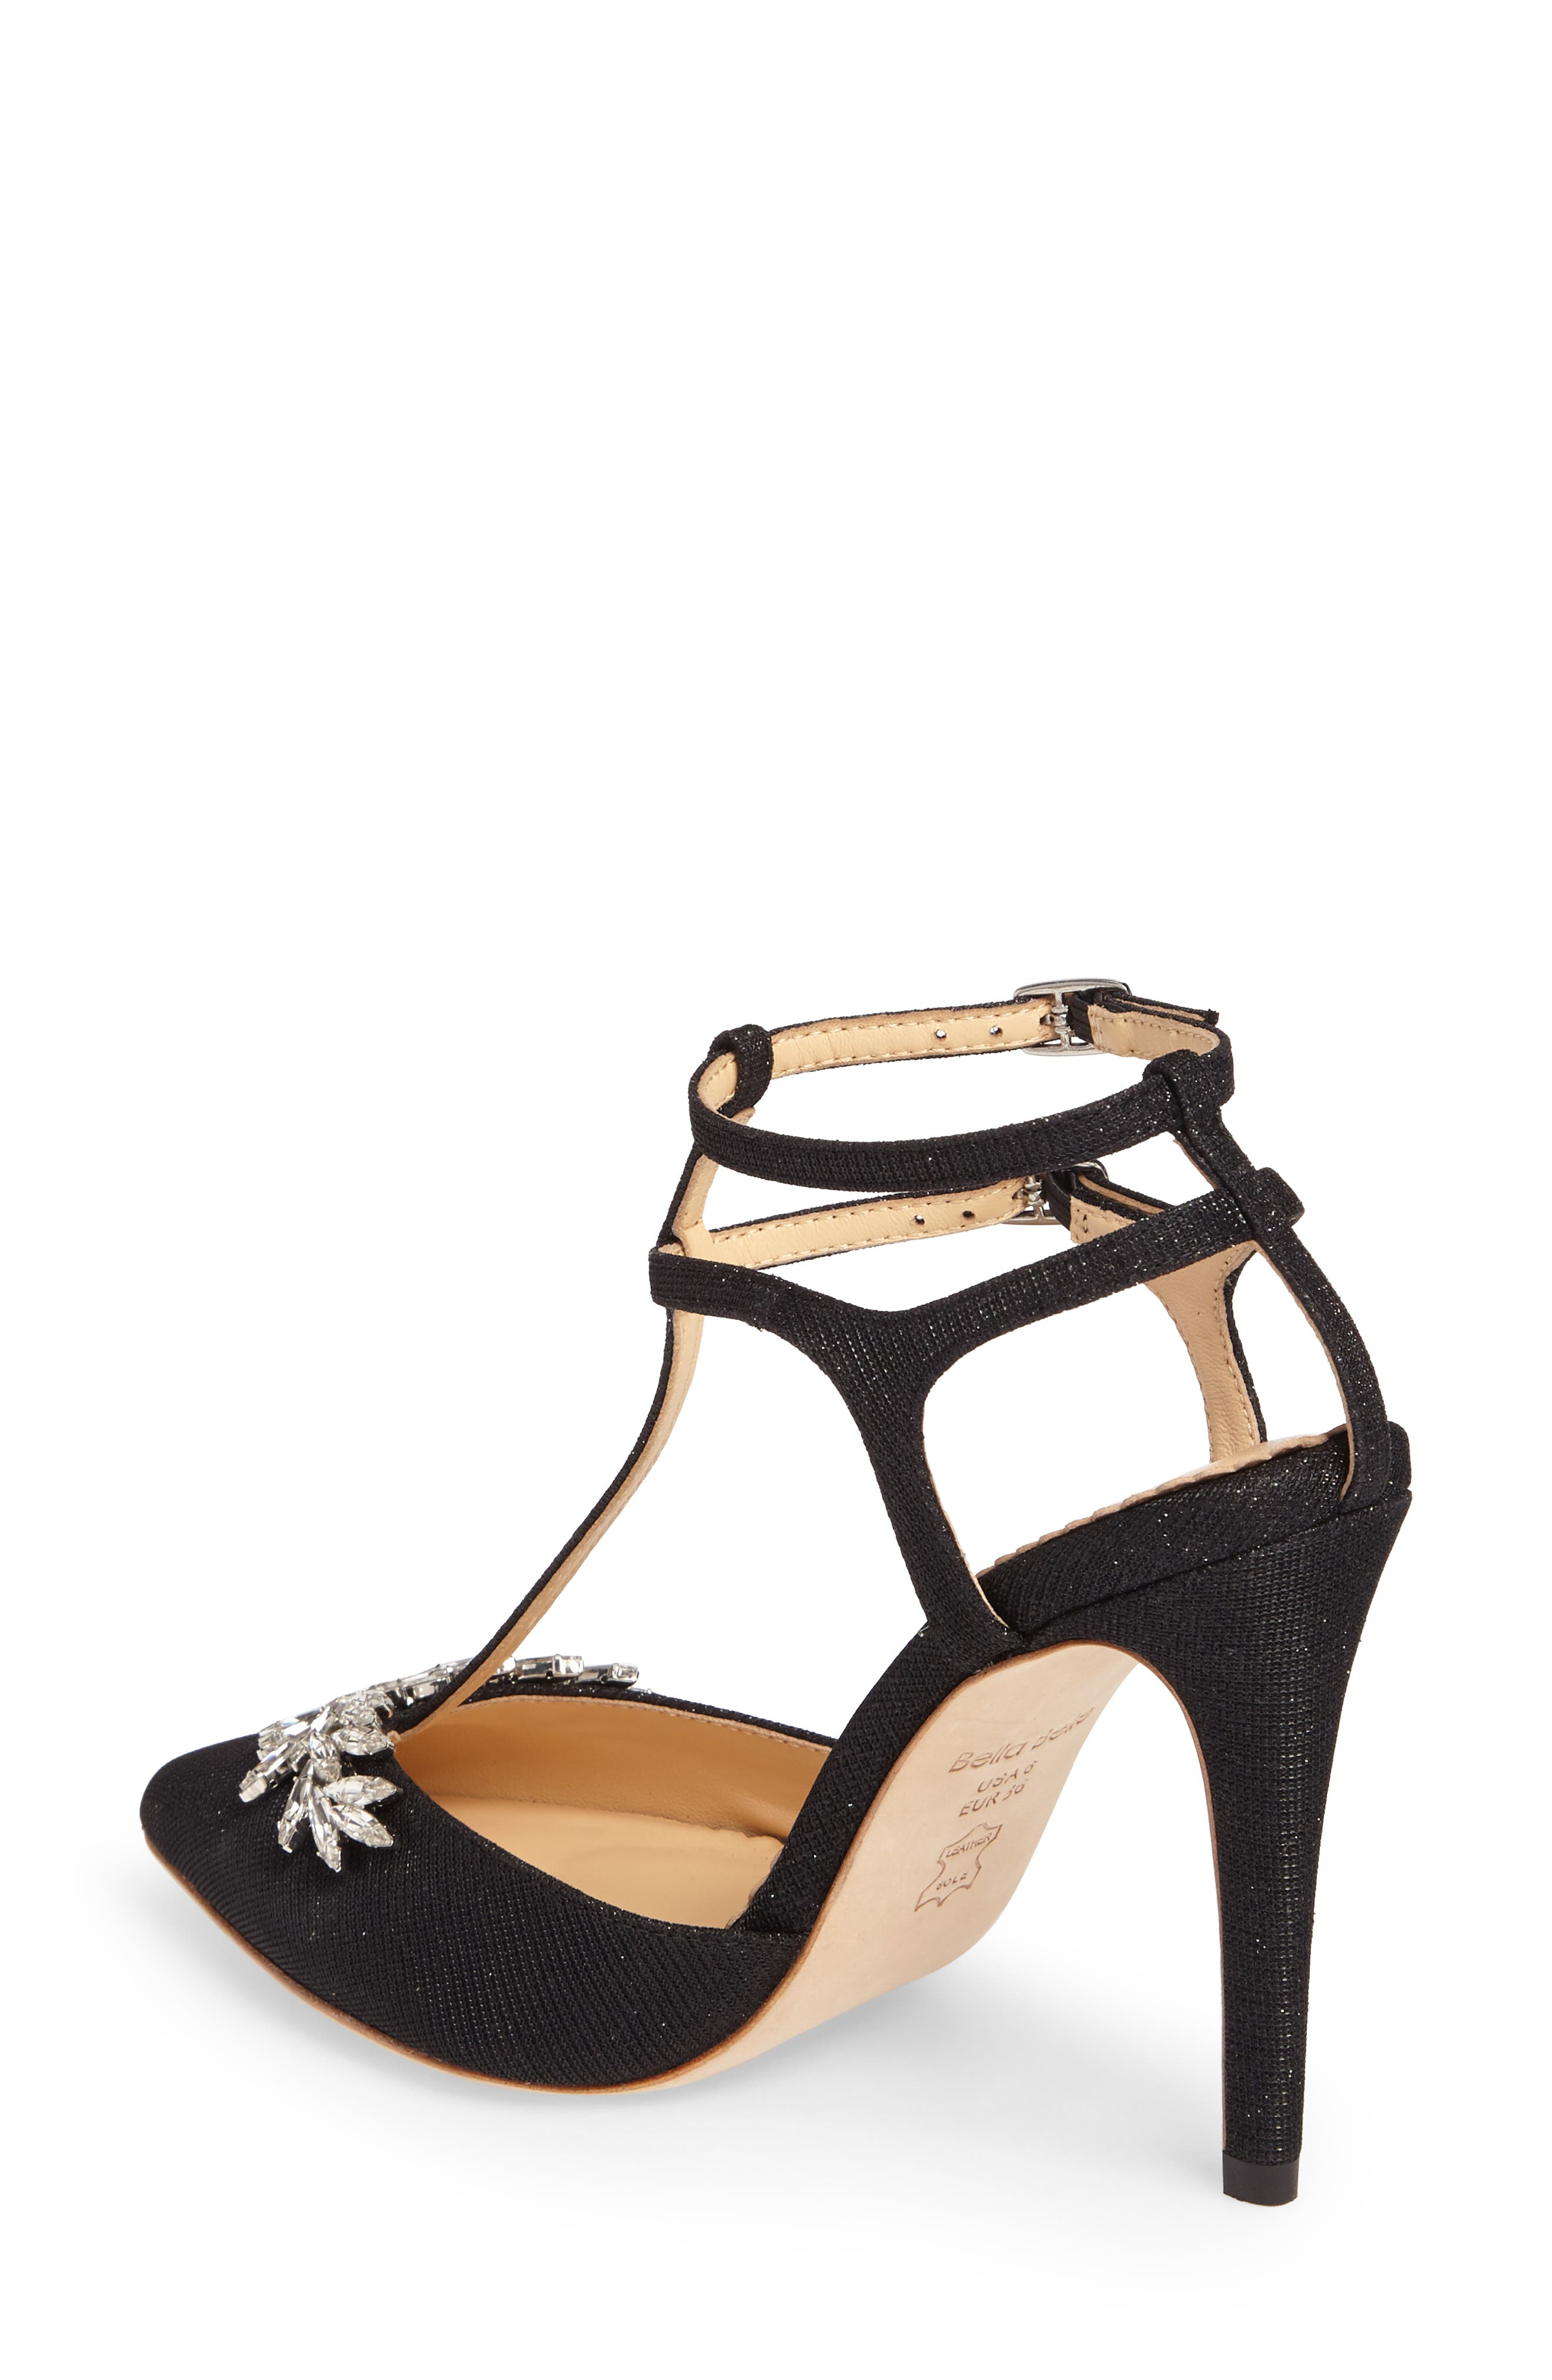 Payge Embellished T-Strap Pump,                             Alternate thumbnail 2, color,                             BLACK FABRIC